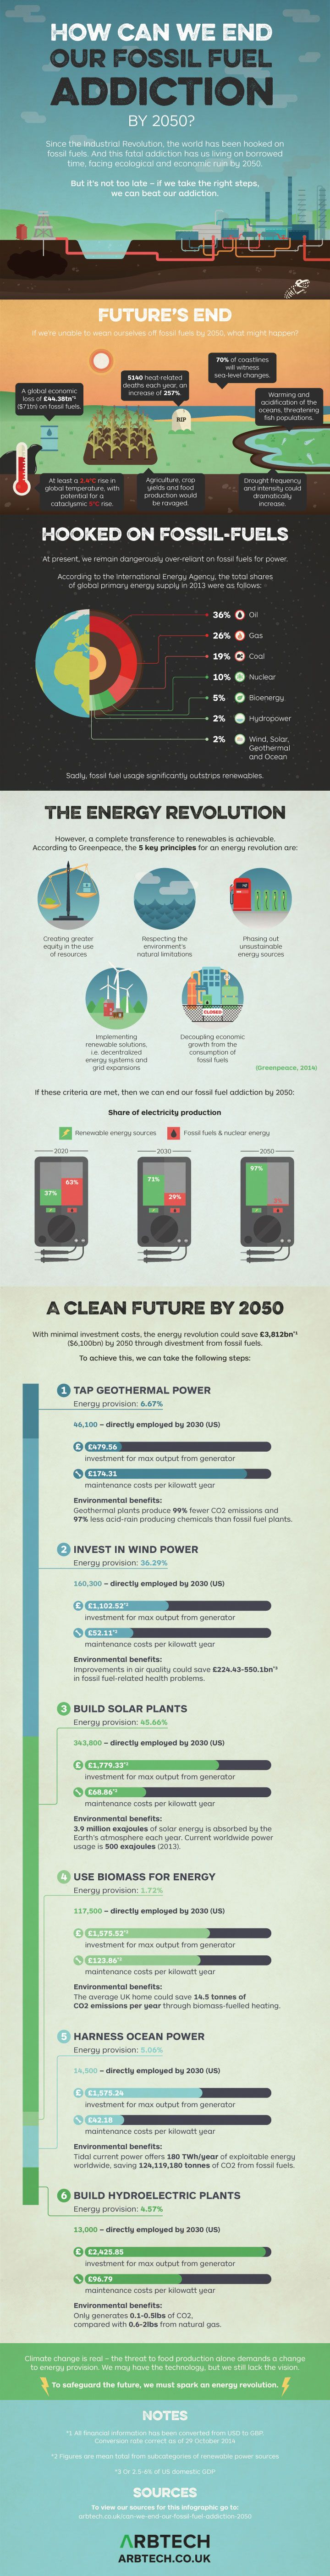 Can We End Our Fossil Fuel Addiction by 2050? #infographic #Environment #FossilFuel